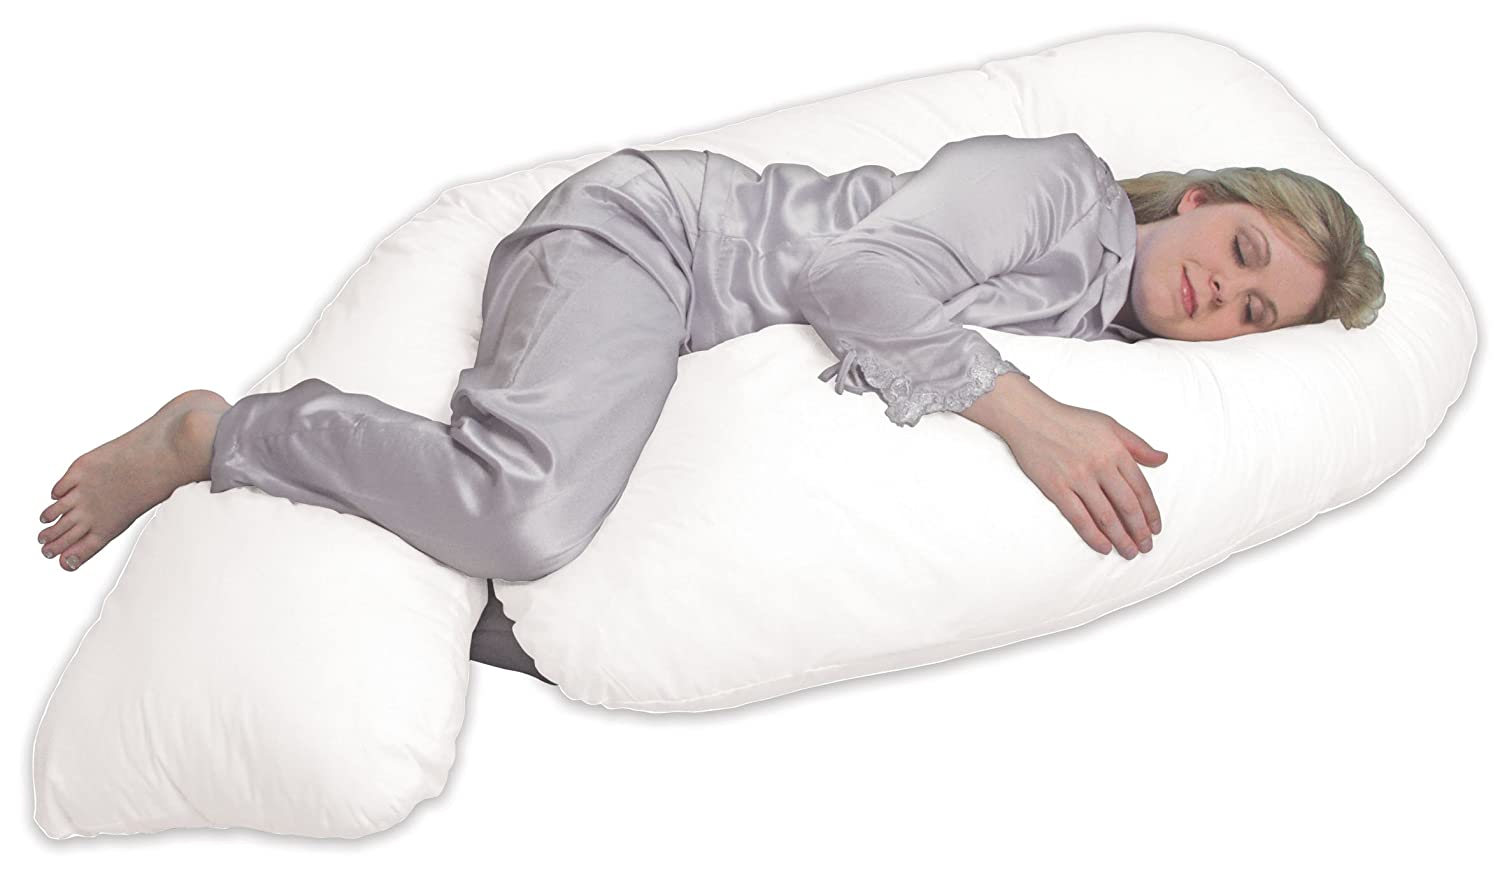 Related image, woman using a Leachco All Nighter body pillow